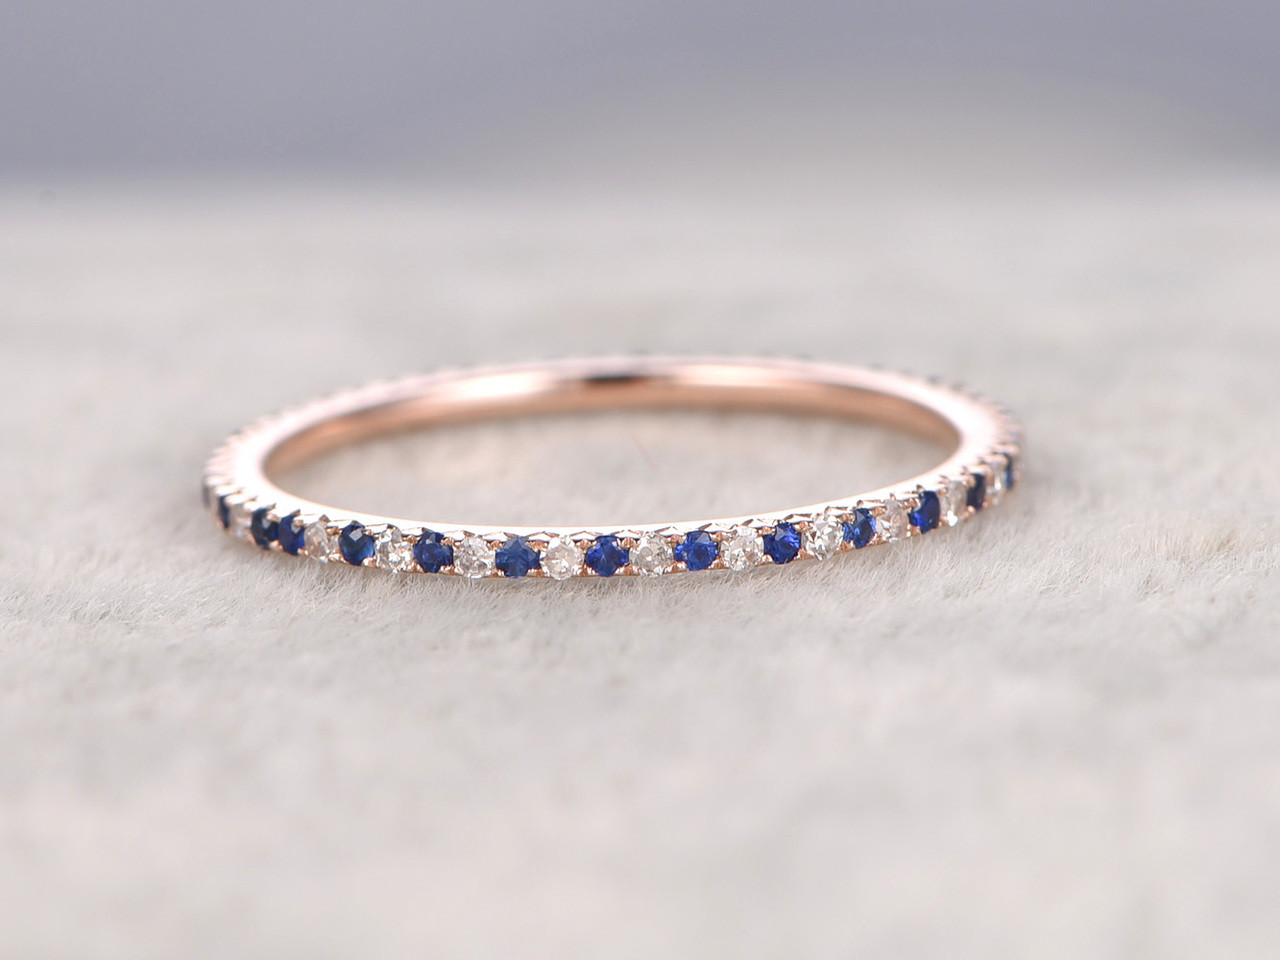 wedding blue row three anniversary wedandetails band tcw sapphire cfm bands ring diamonds